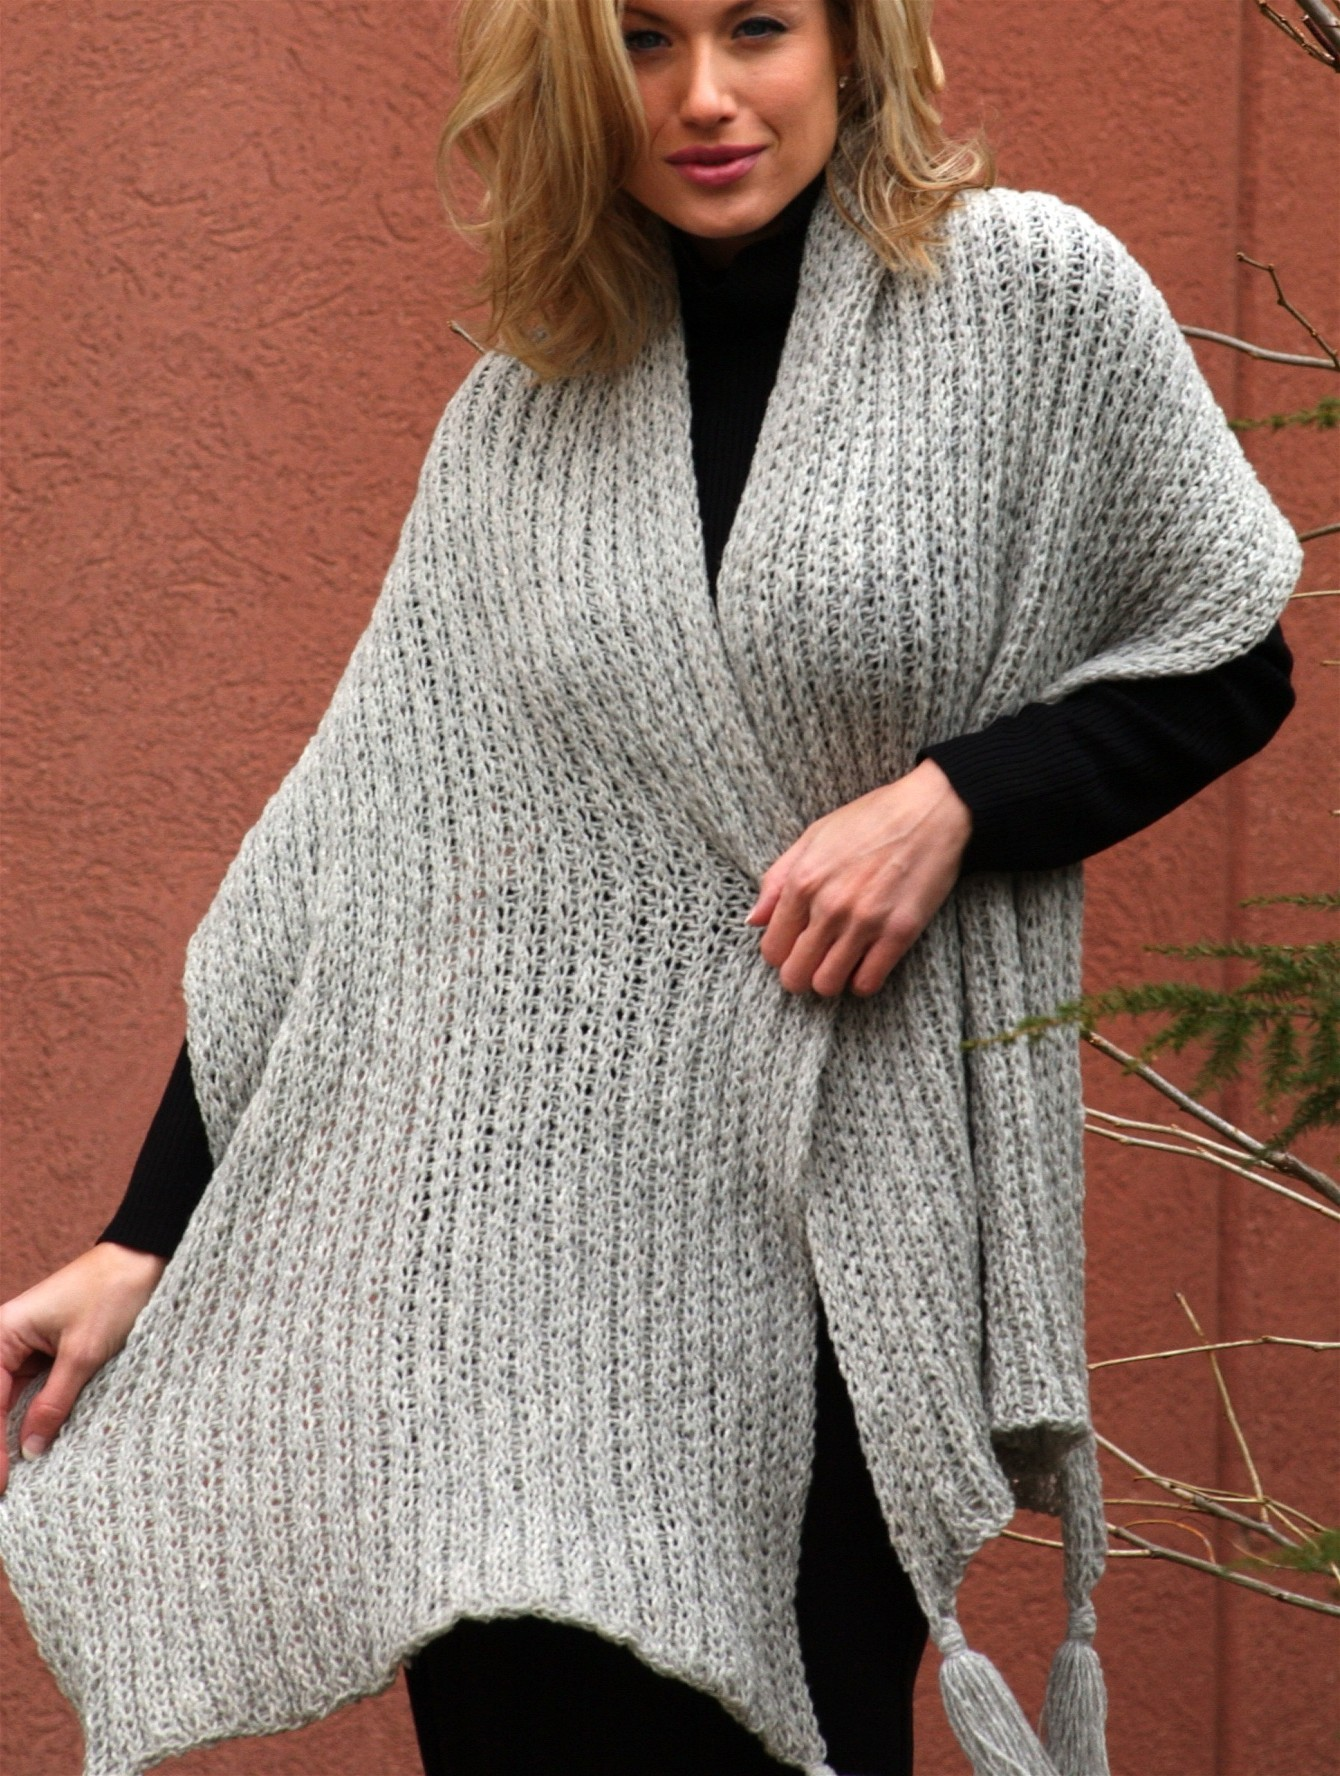 Easy Shawl Knitting Patterns Free New Inspiration